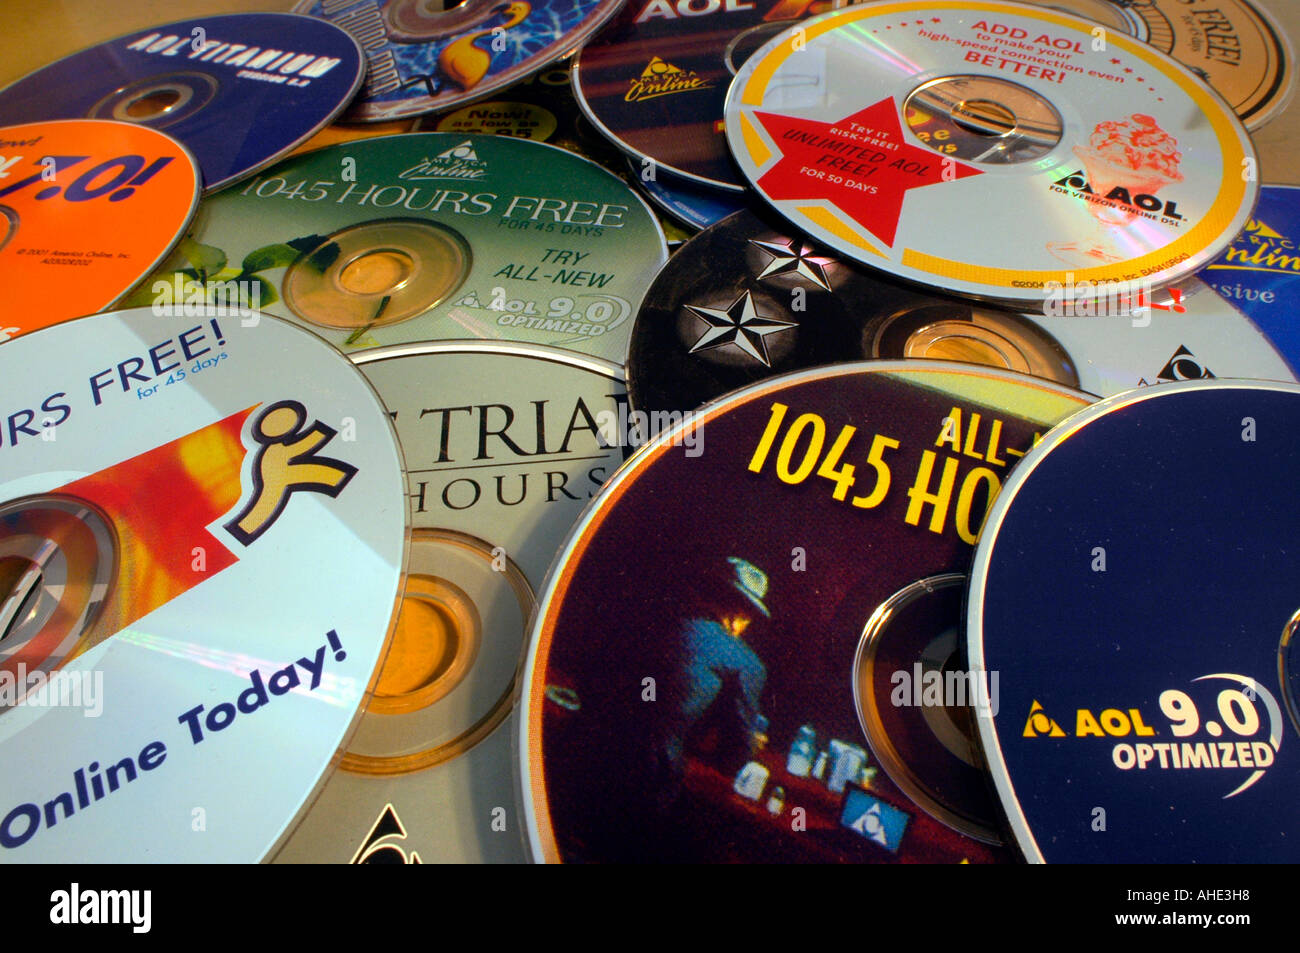 A collection of AOL cd roms Stock Photo